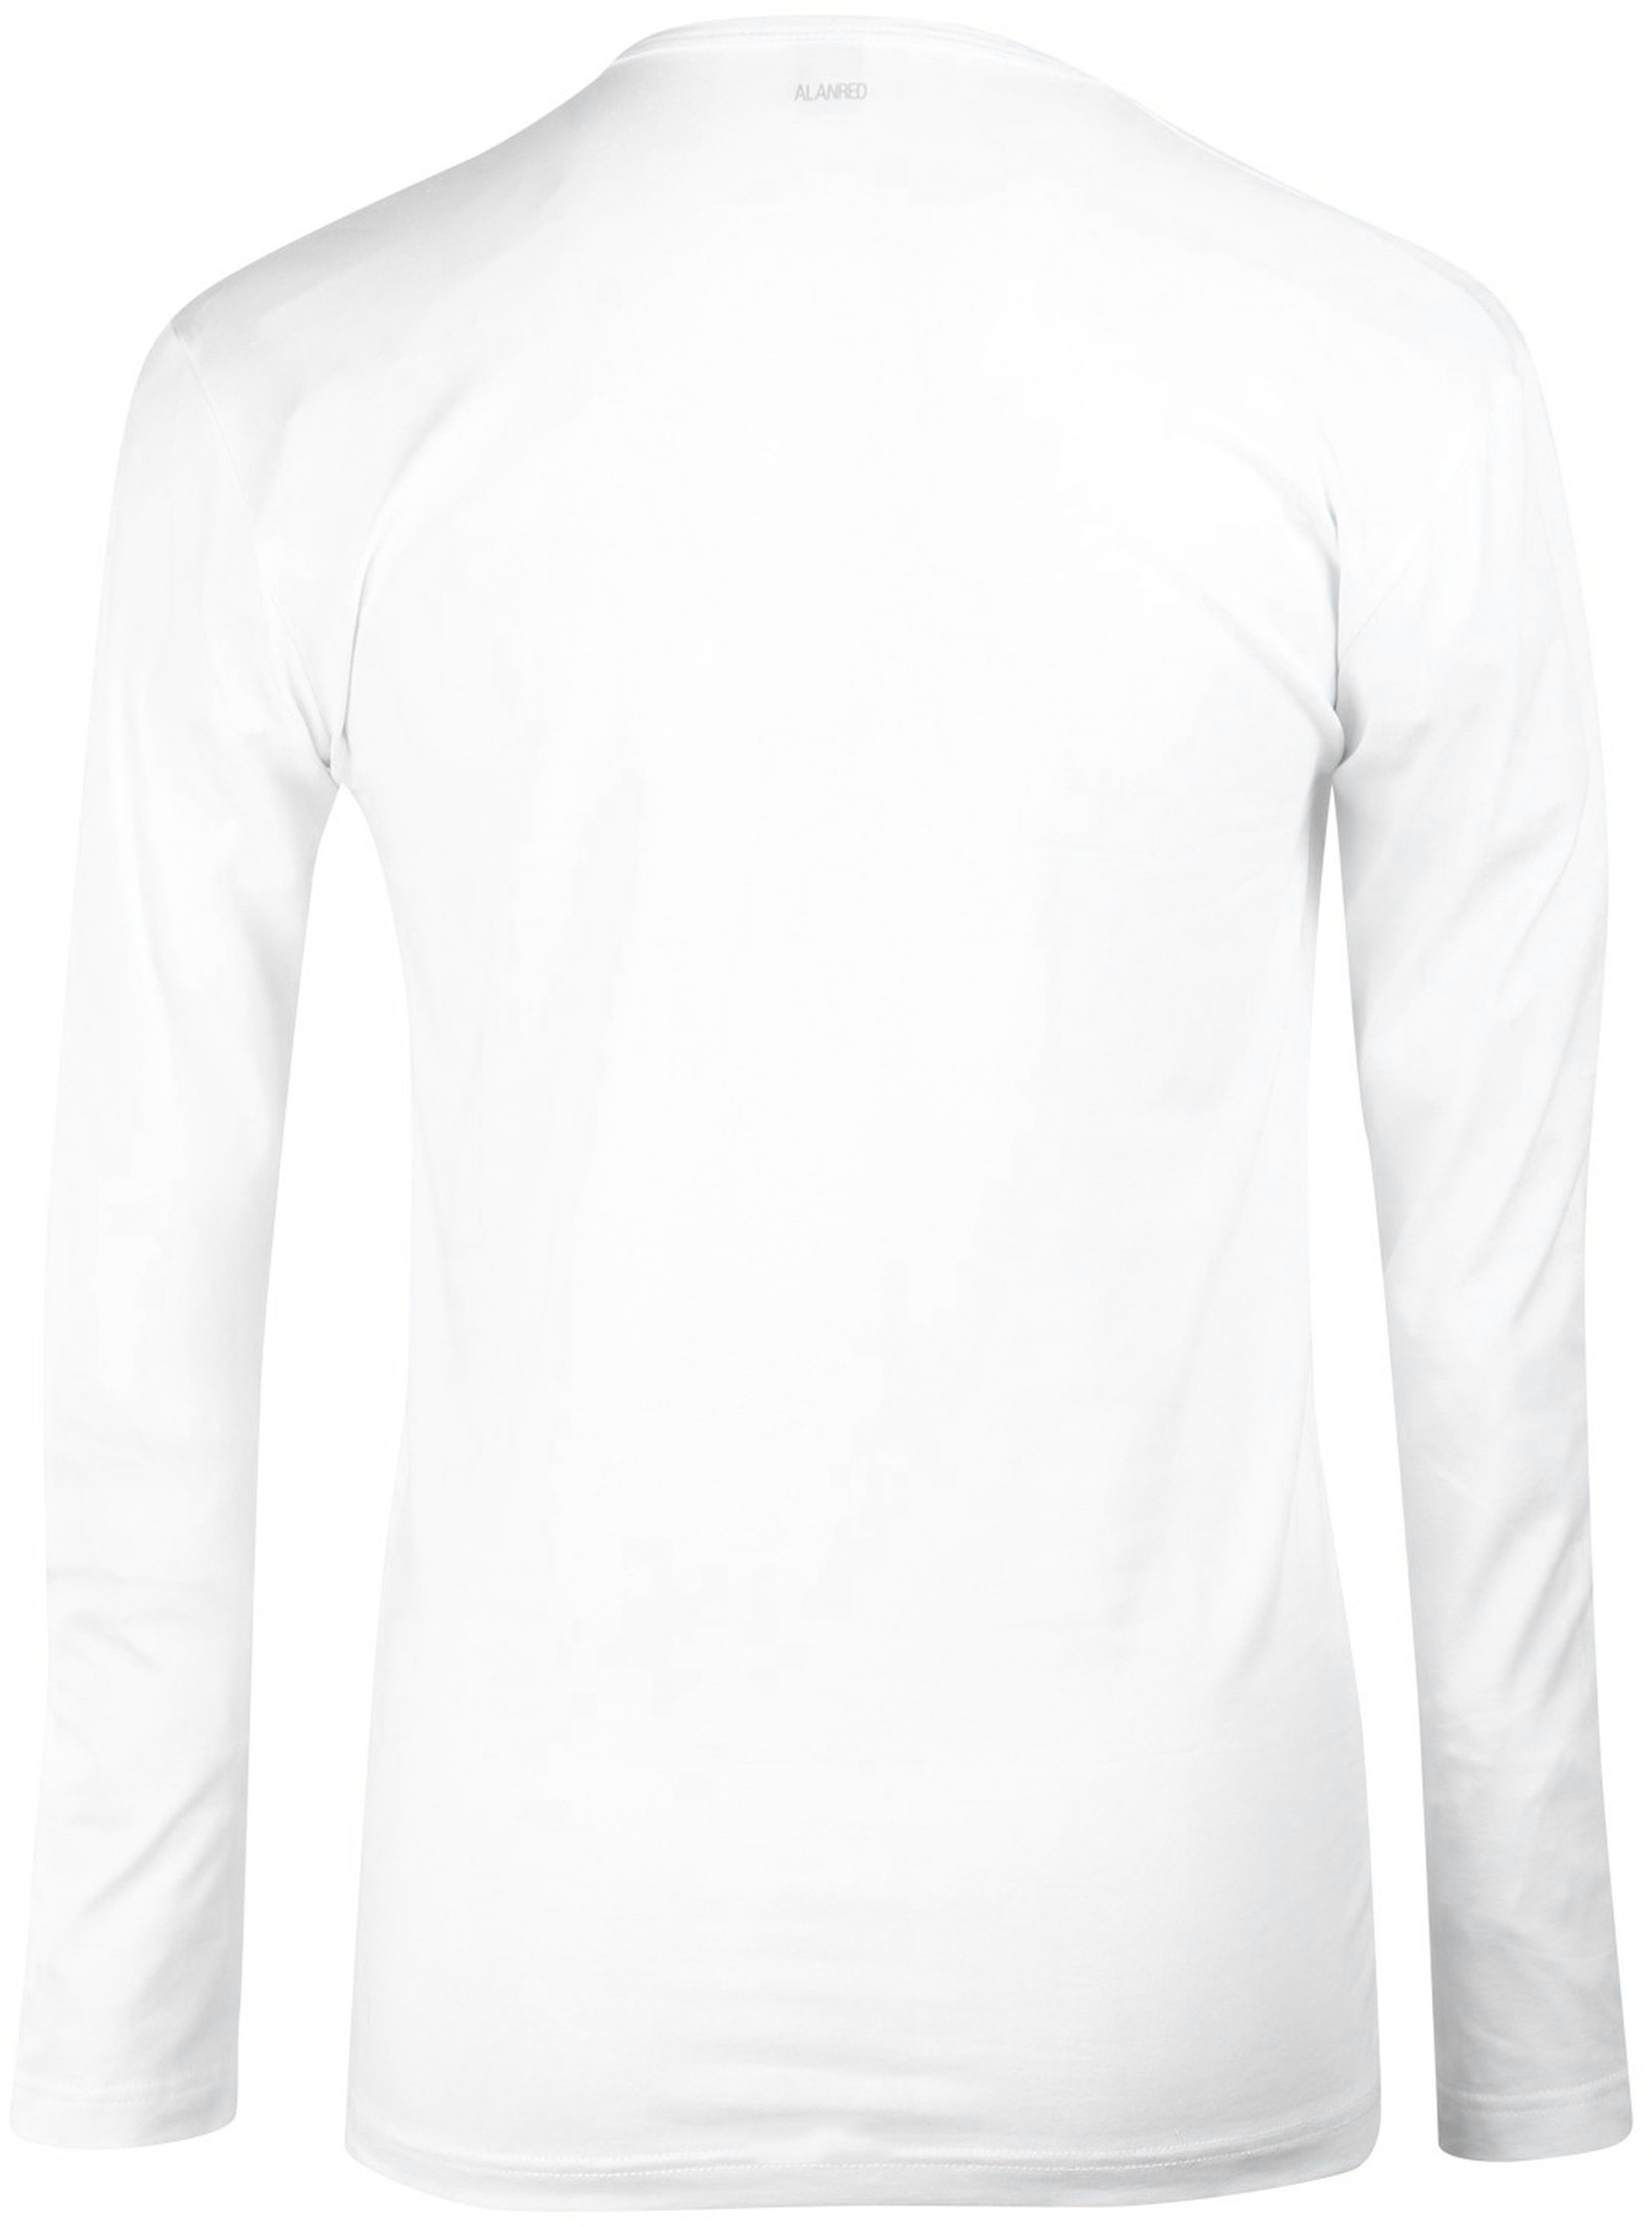 Alan Red Olbia Longsleeve White 1-Pack foto 2